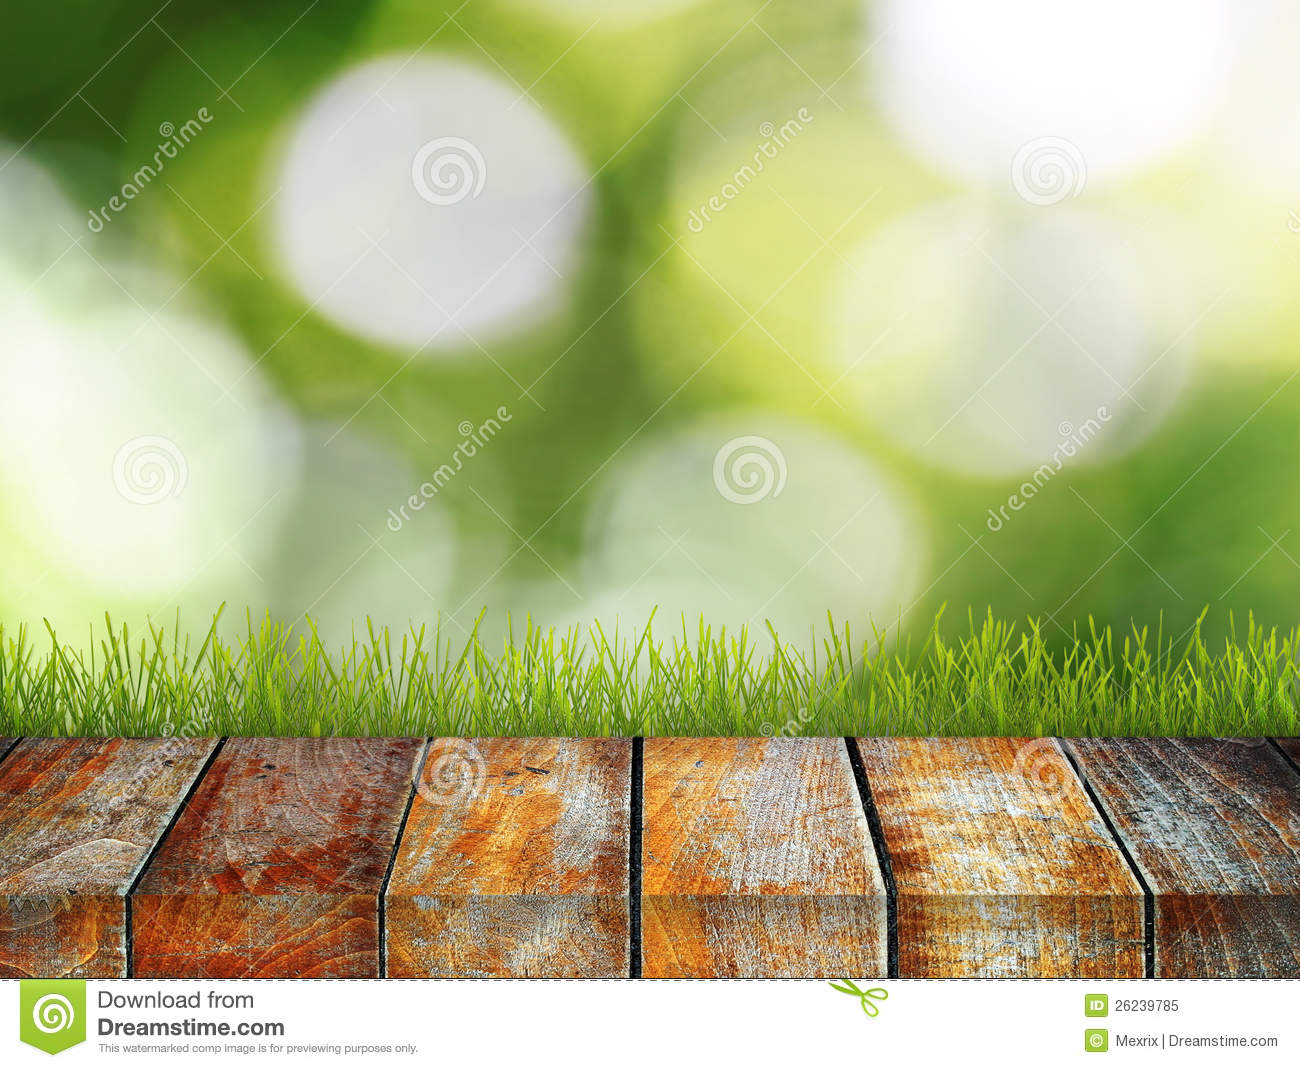 Natural Outdoor Background Royalty Free Stock Photo - Image: 26239785